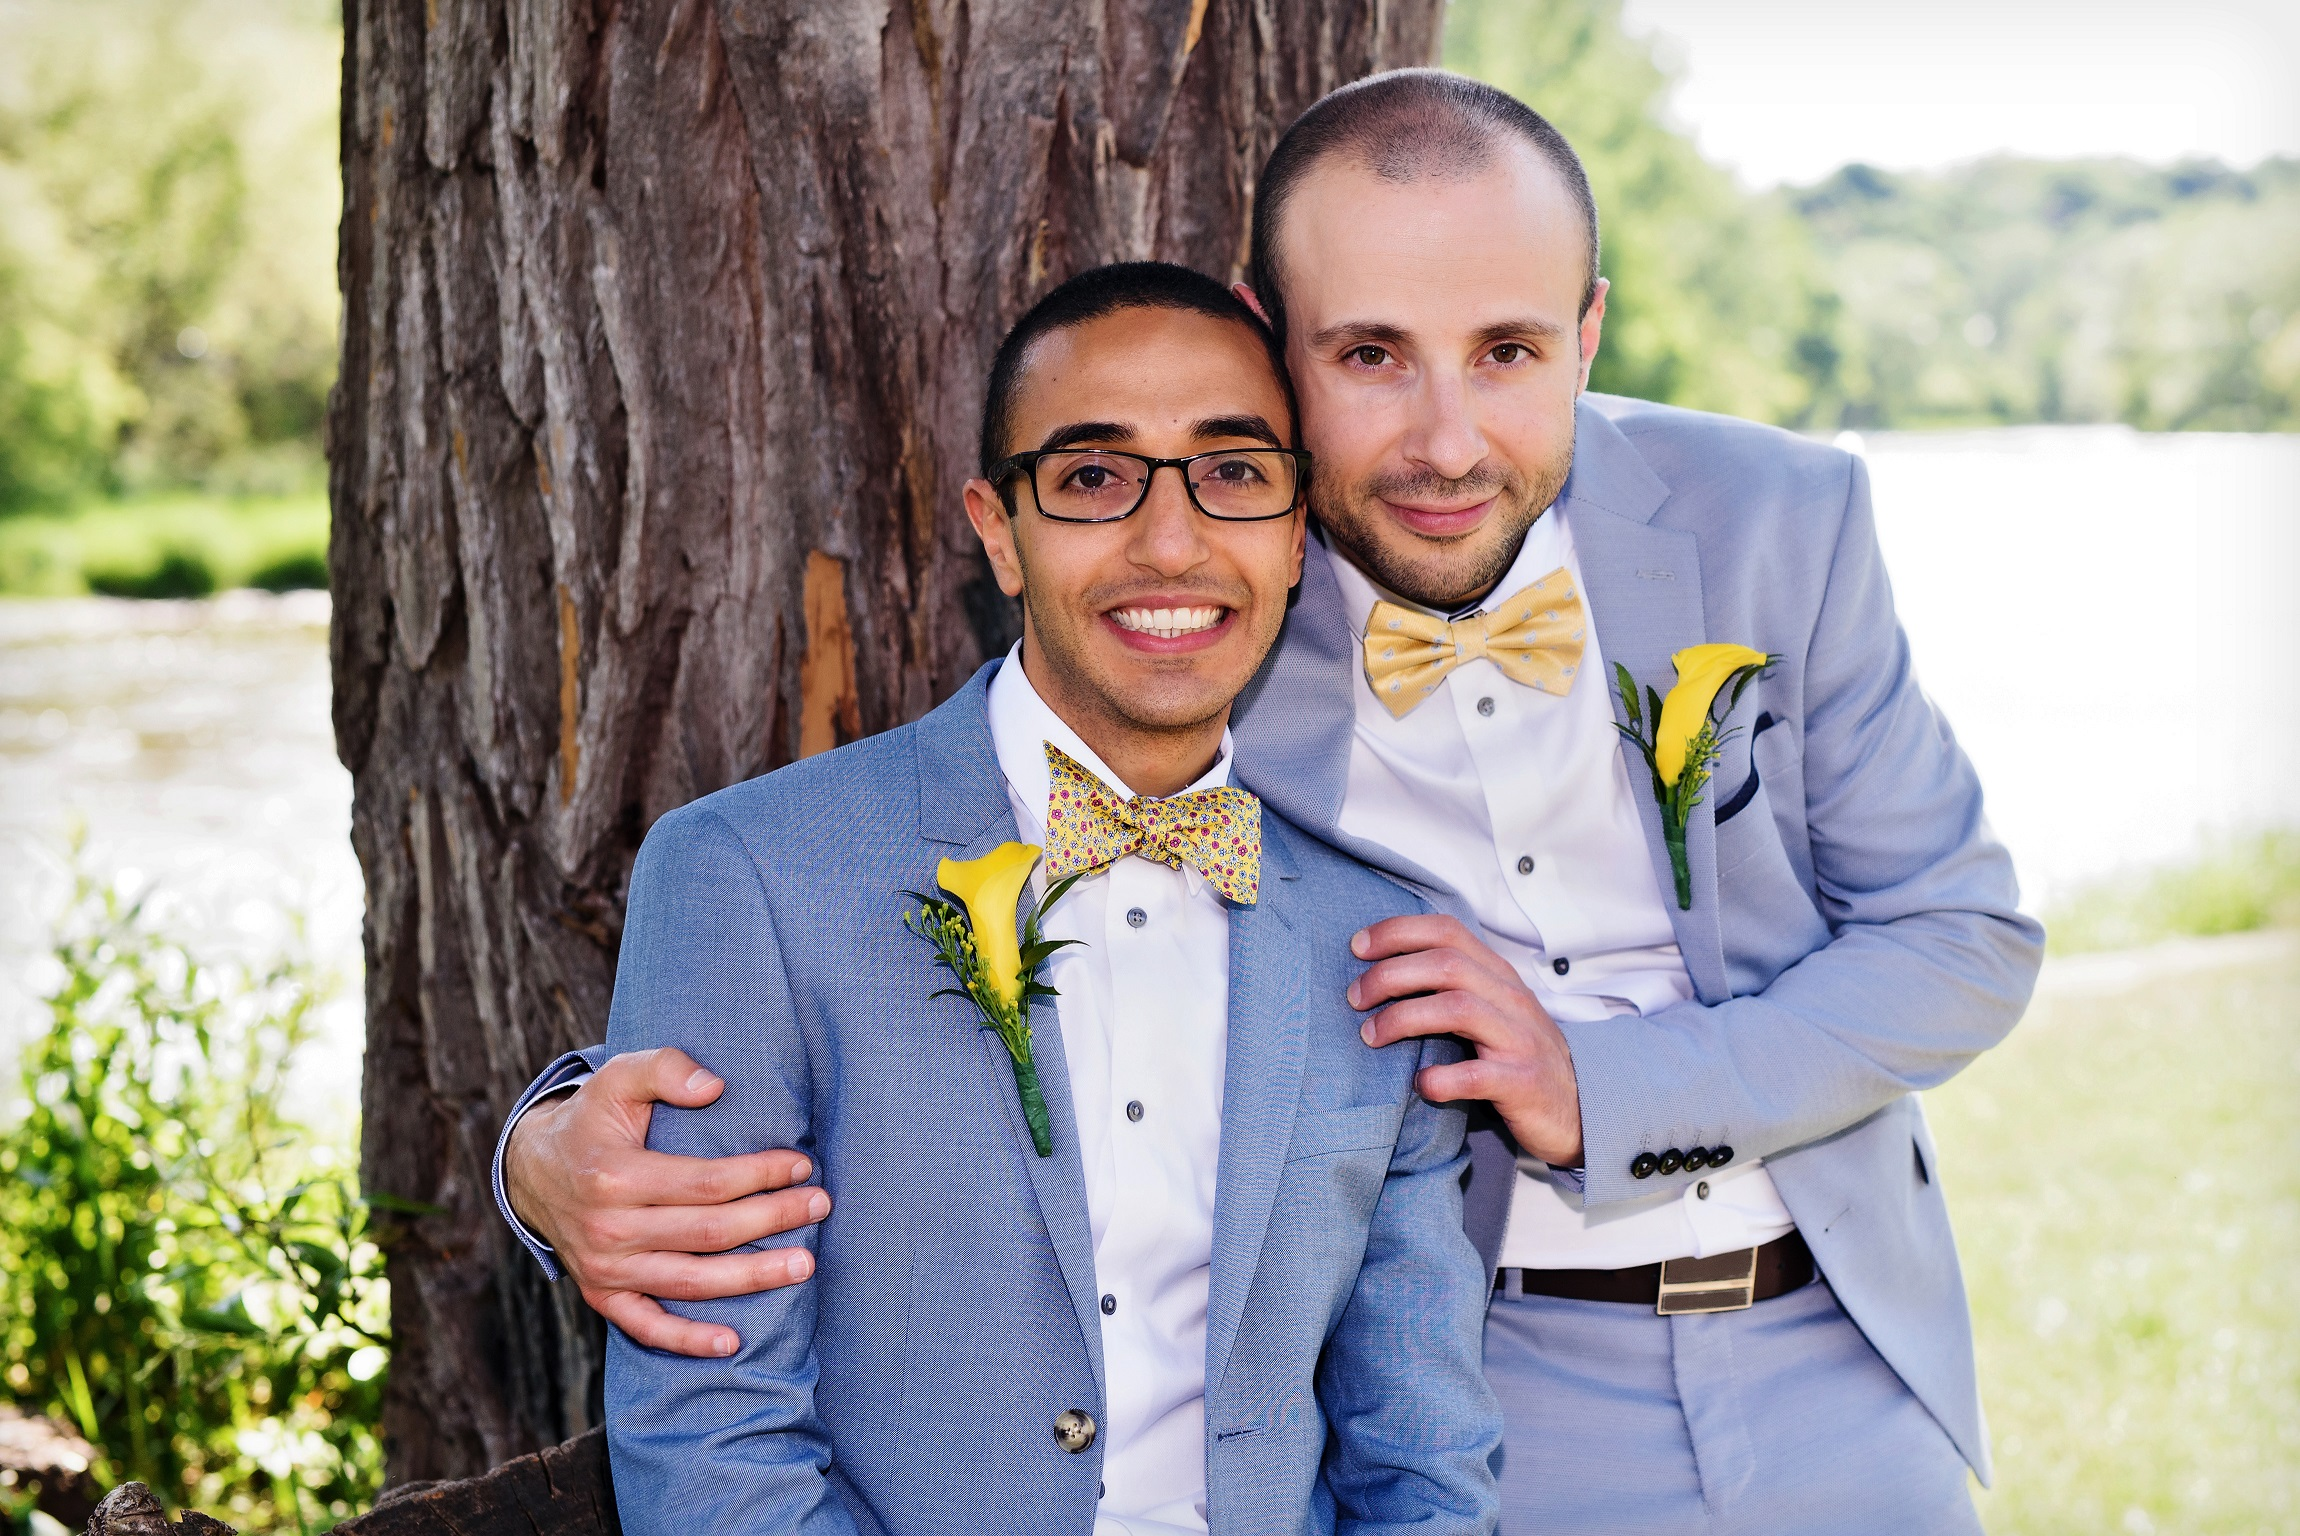 huggins gay dating site Start a meaningful relationship with local gay singles on our gay dating site register for free and join thousands of gay singles looking for love.